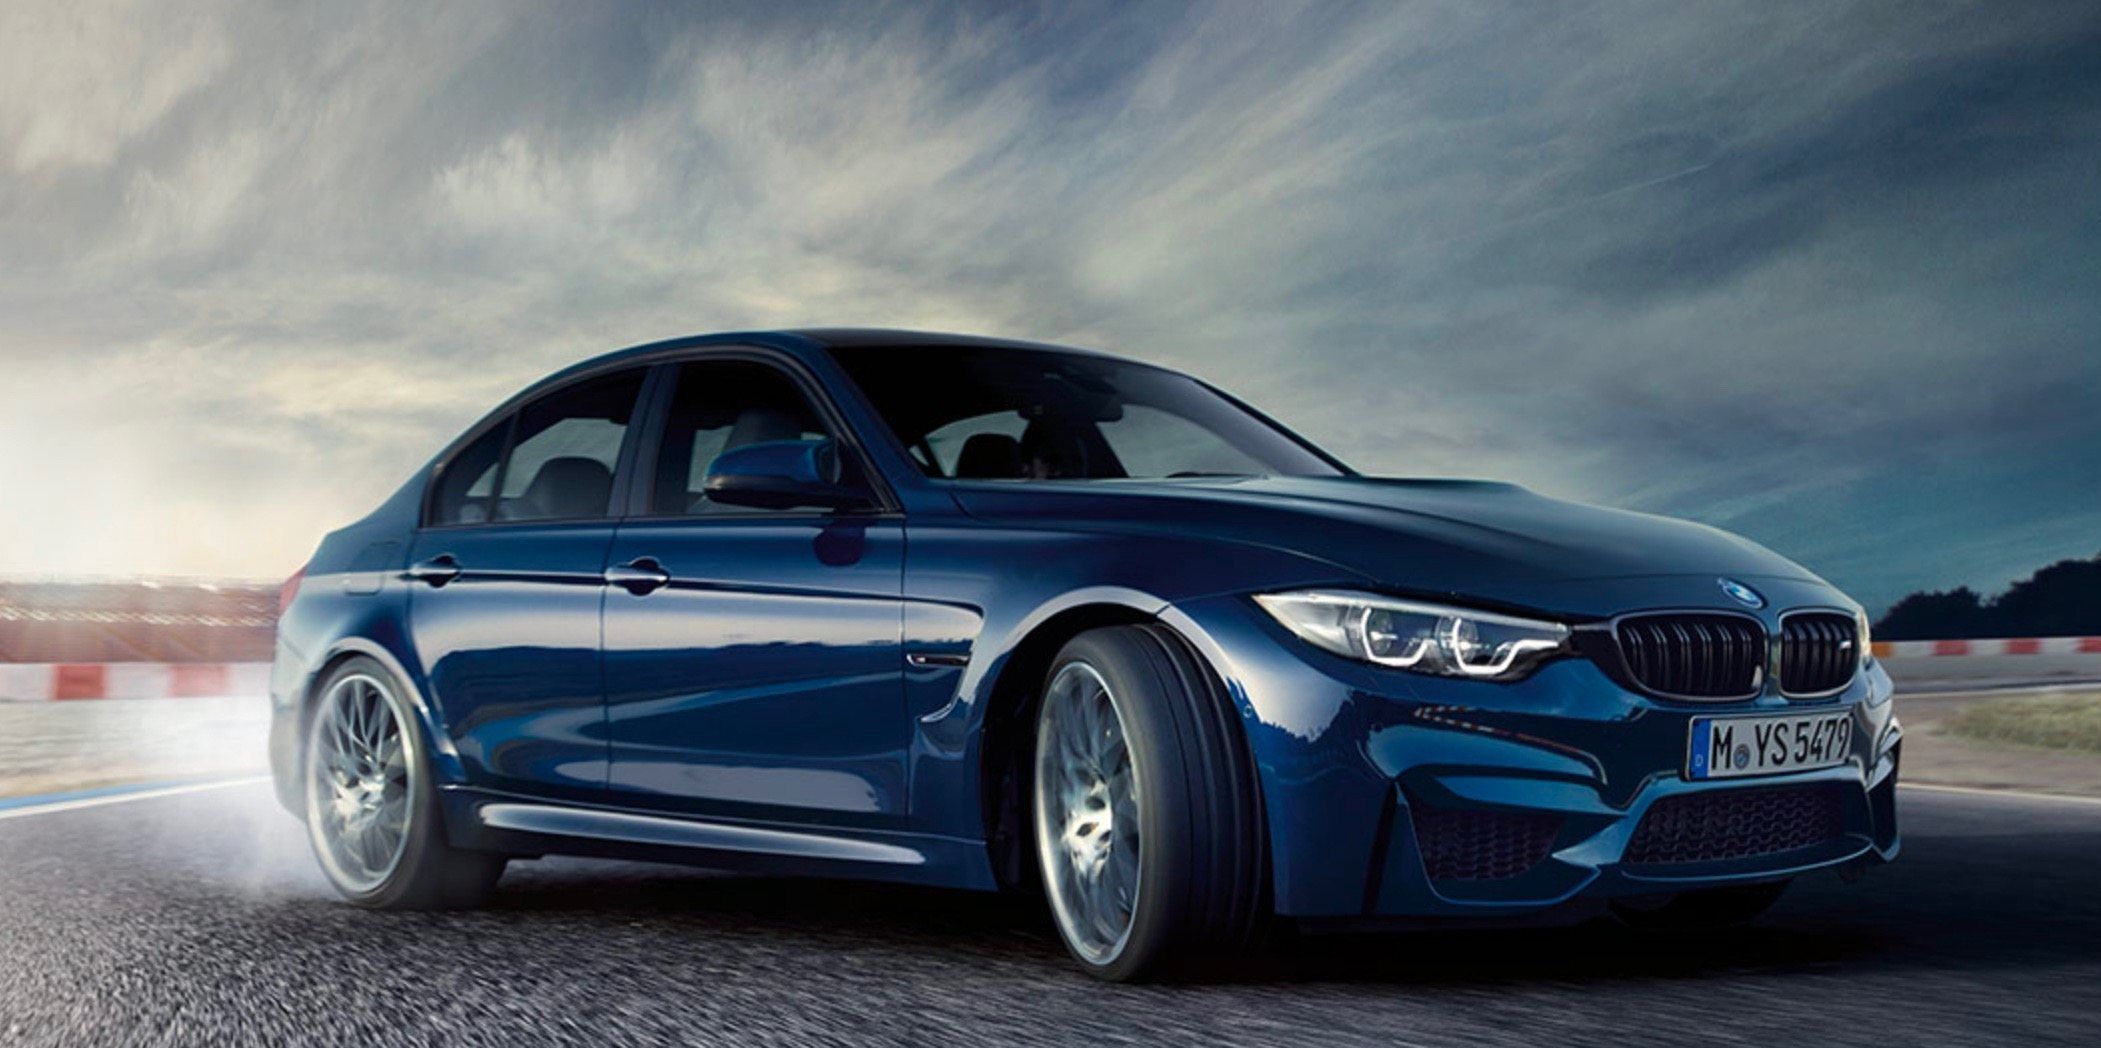 2021 Bmw M3 Price And Release Date In 2020 Bmw Bmw M3 Bmw M3 Price